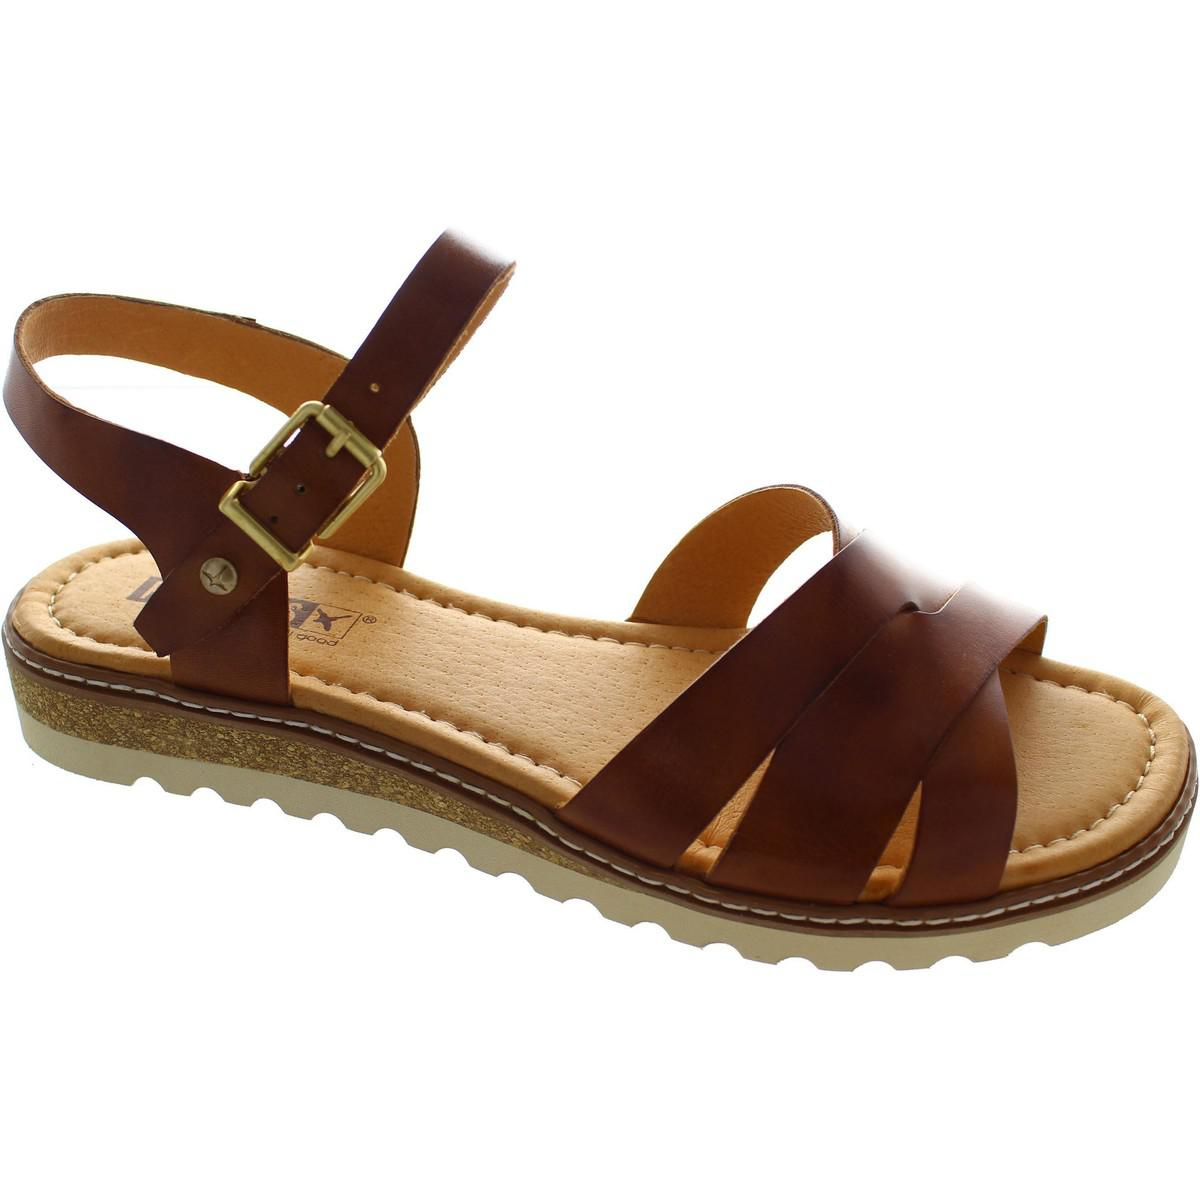 Pikolinos Alcudia women's Sandals in Where Can I Order Buy Online For Cheap Sale Online Clearance Many Kinds Of fWuczR